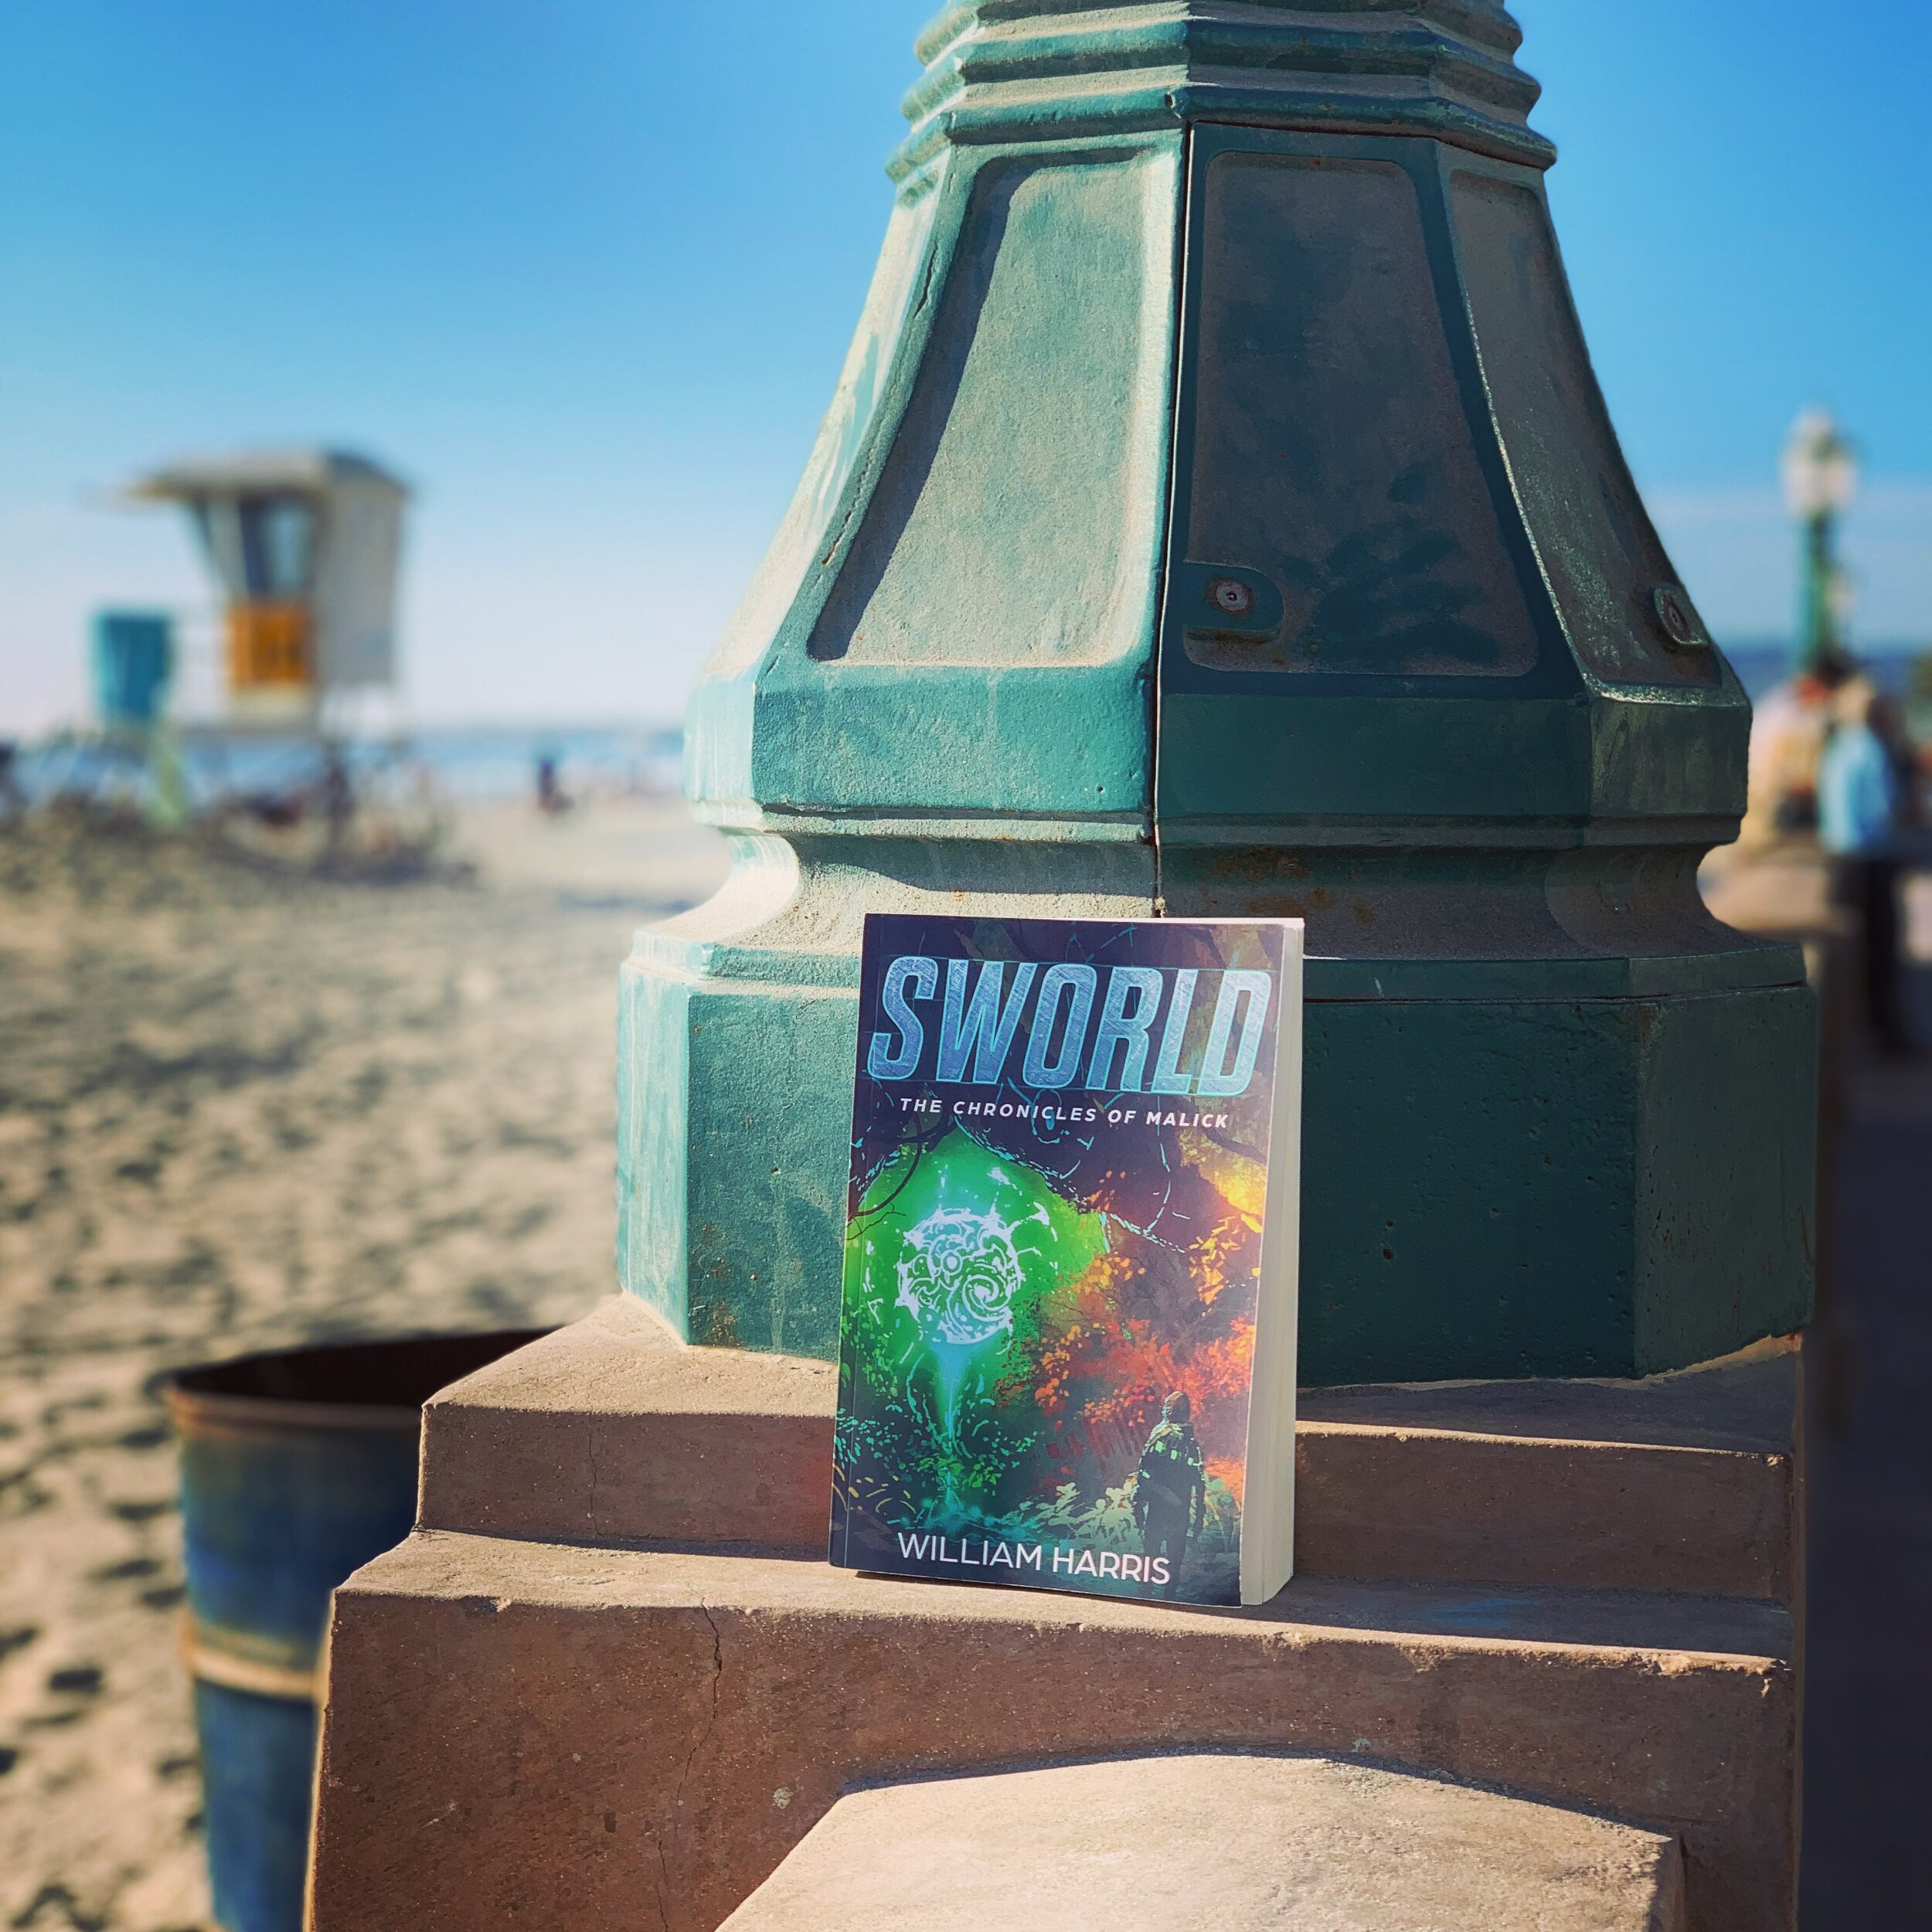 A day at the beach with a great book.